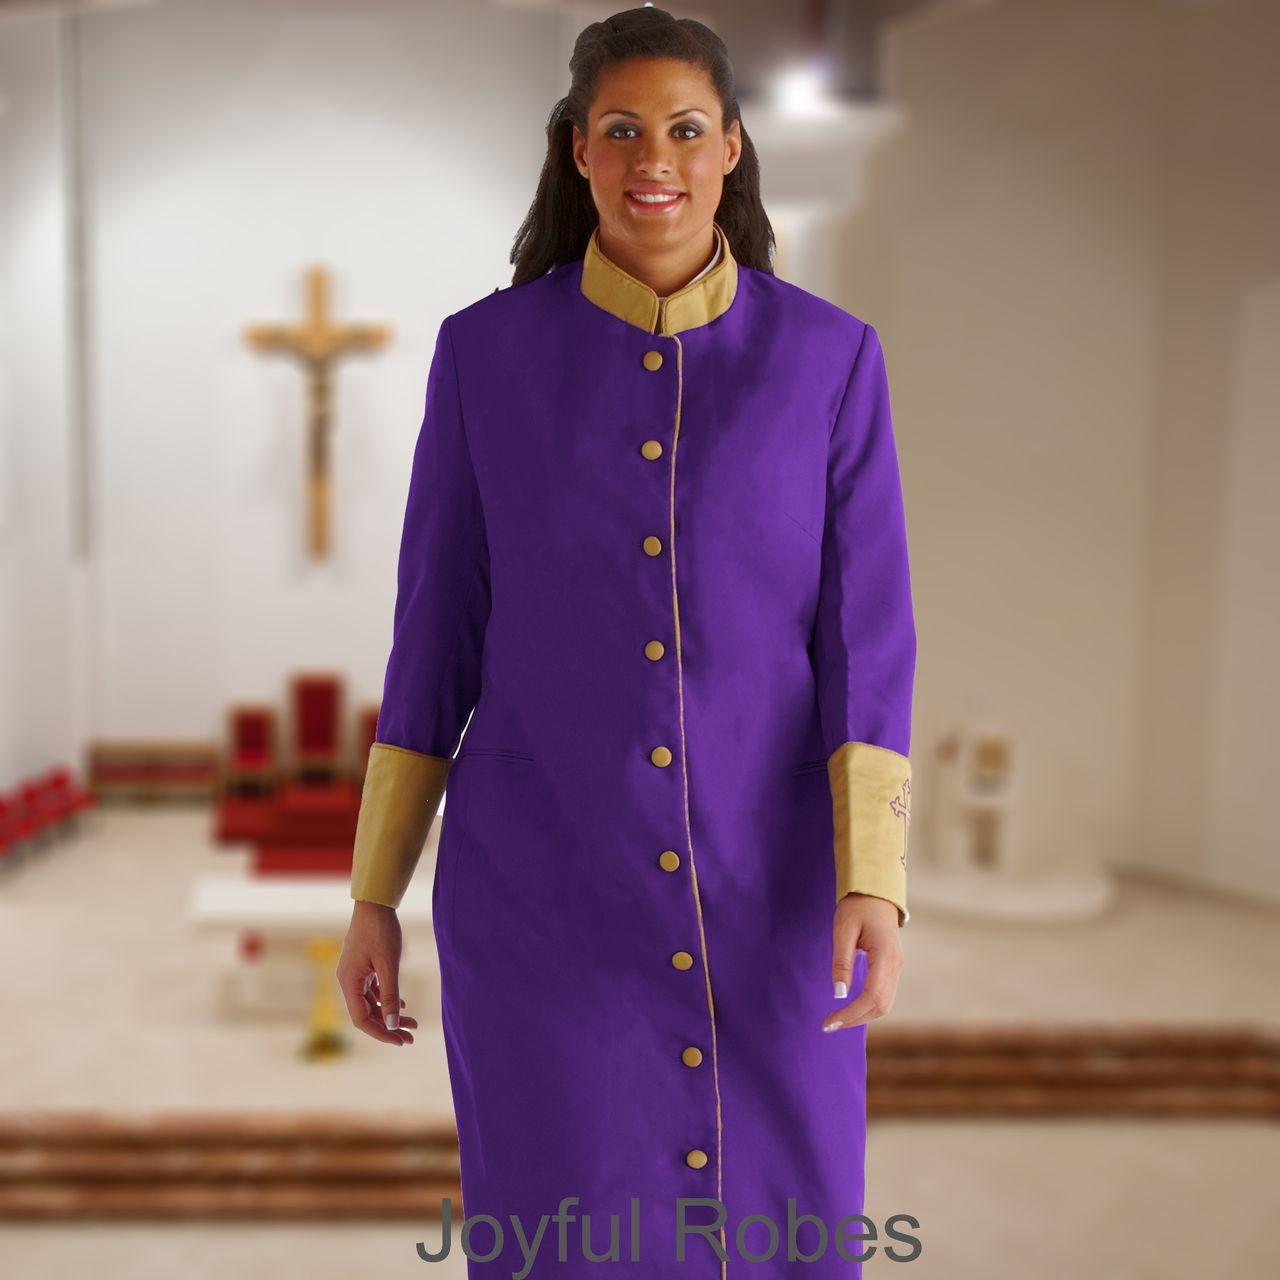 302 W. Women's Clergy/Pastor Robe Purple/Gold